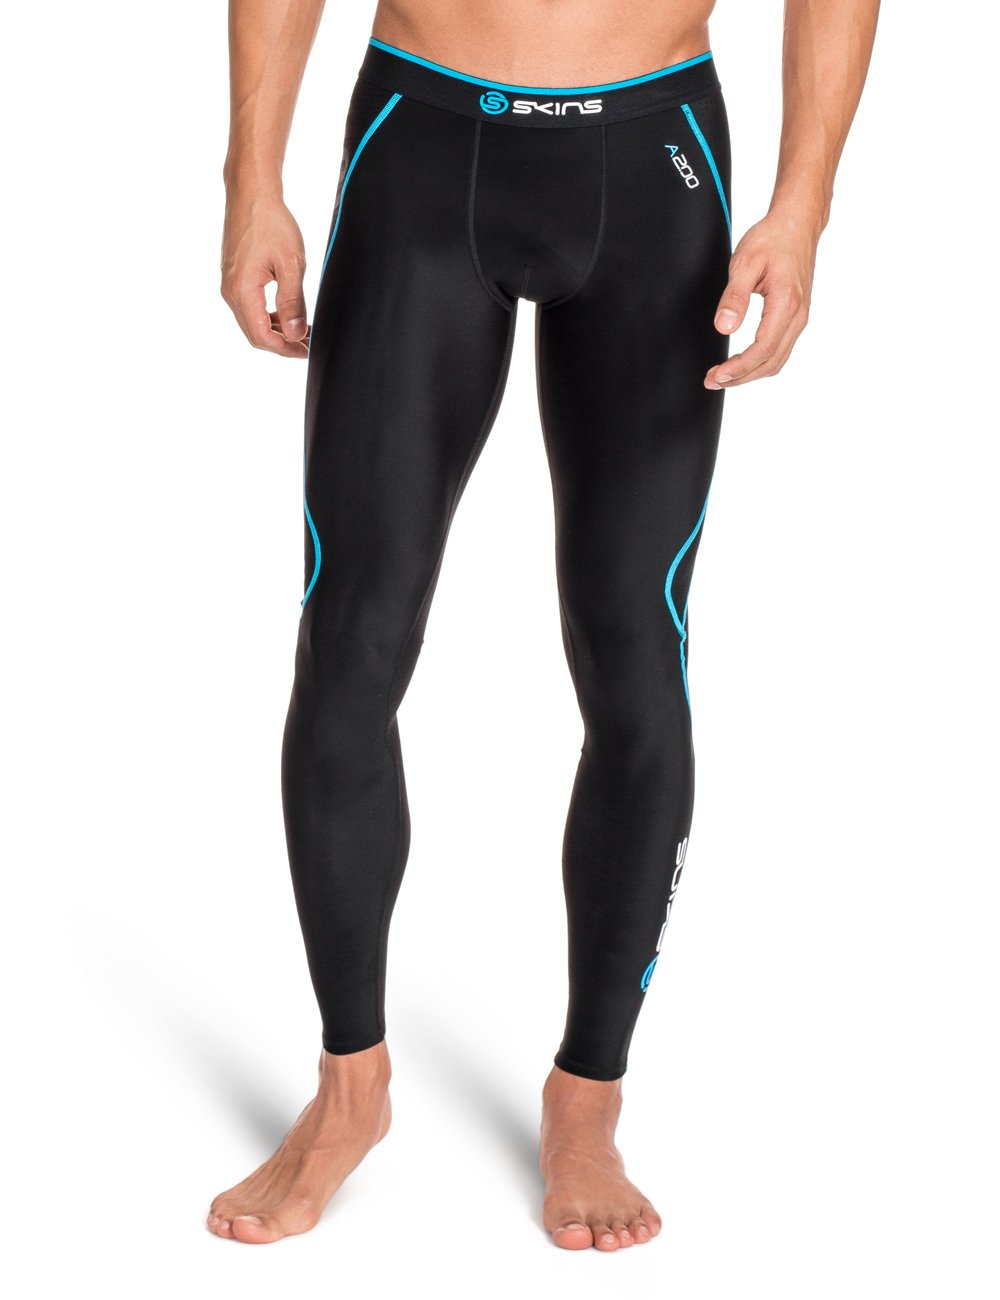 SKINS Men's A200 Compression Long Tights, Black/Neon Blue, X-Small B60182001